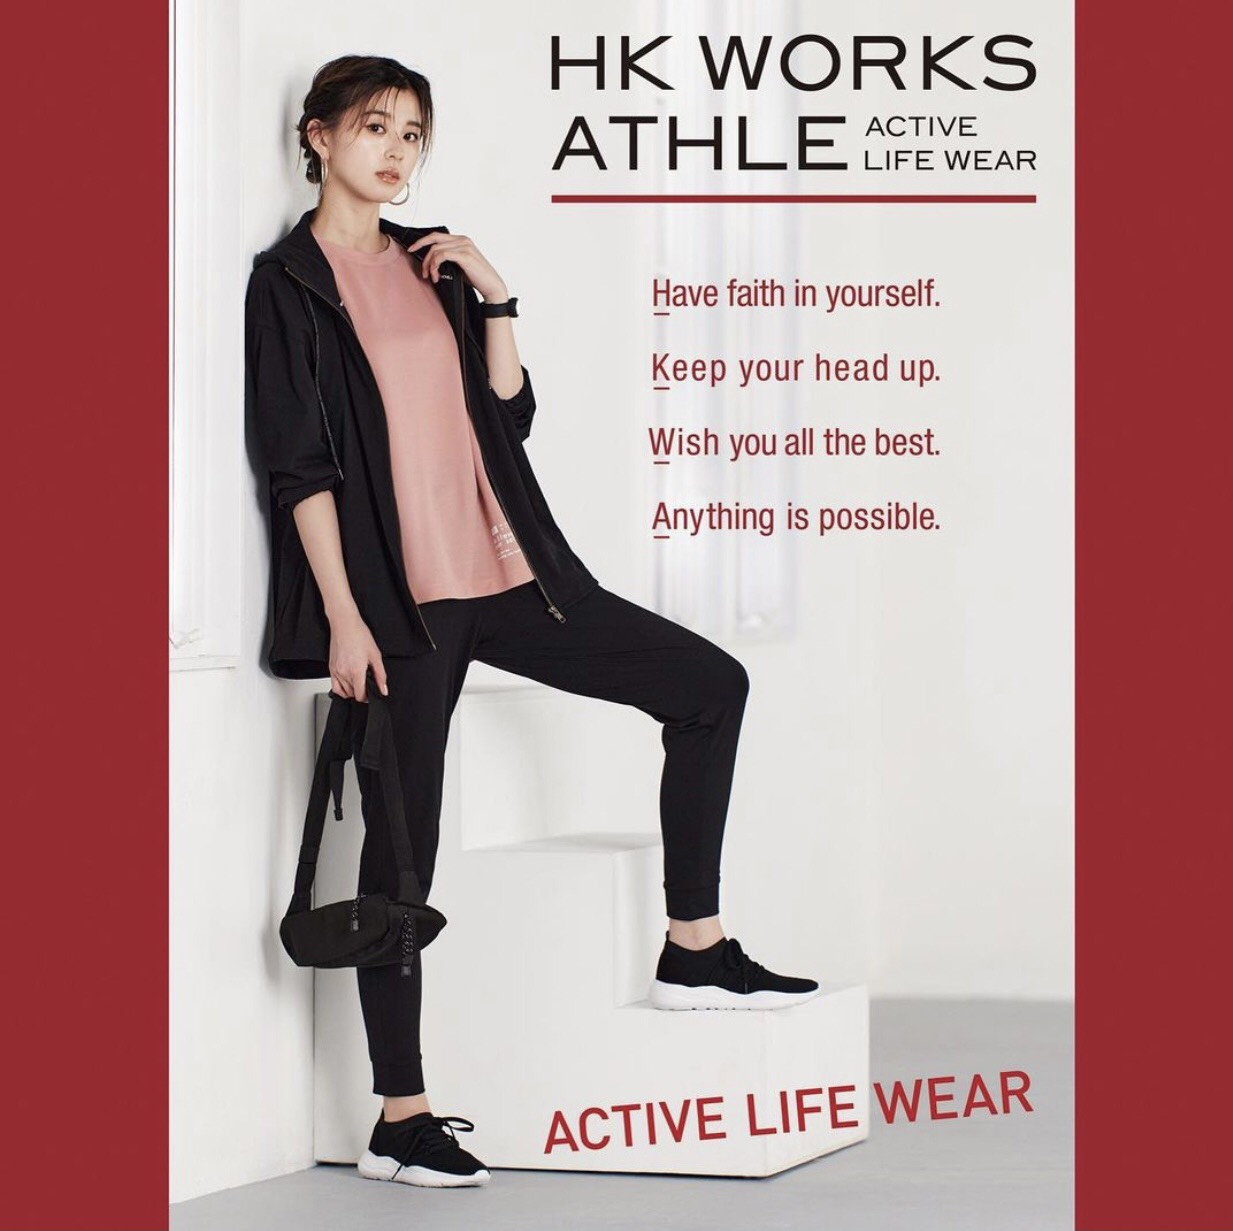 HK WORKS ATHLE ACTIVE LIFE WEAR